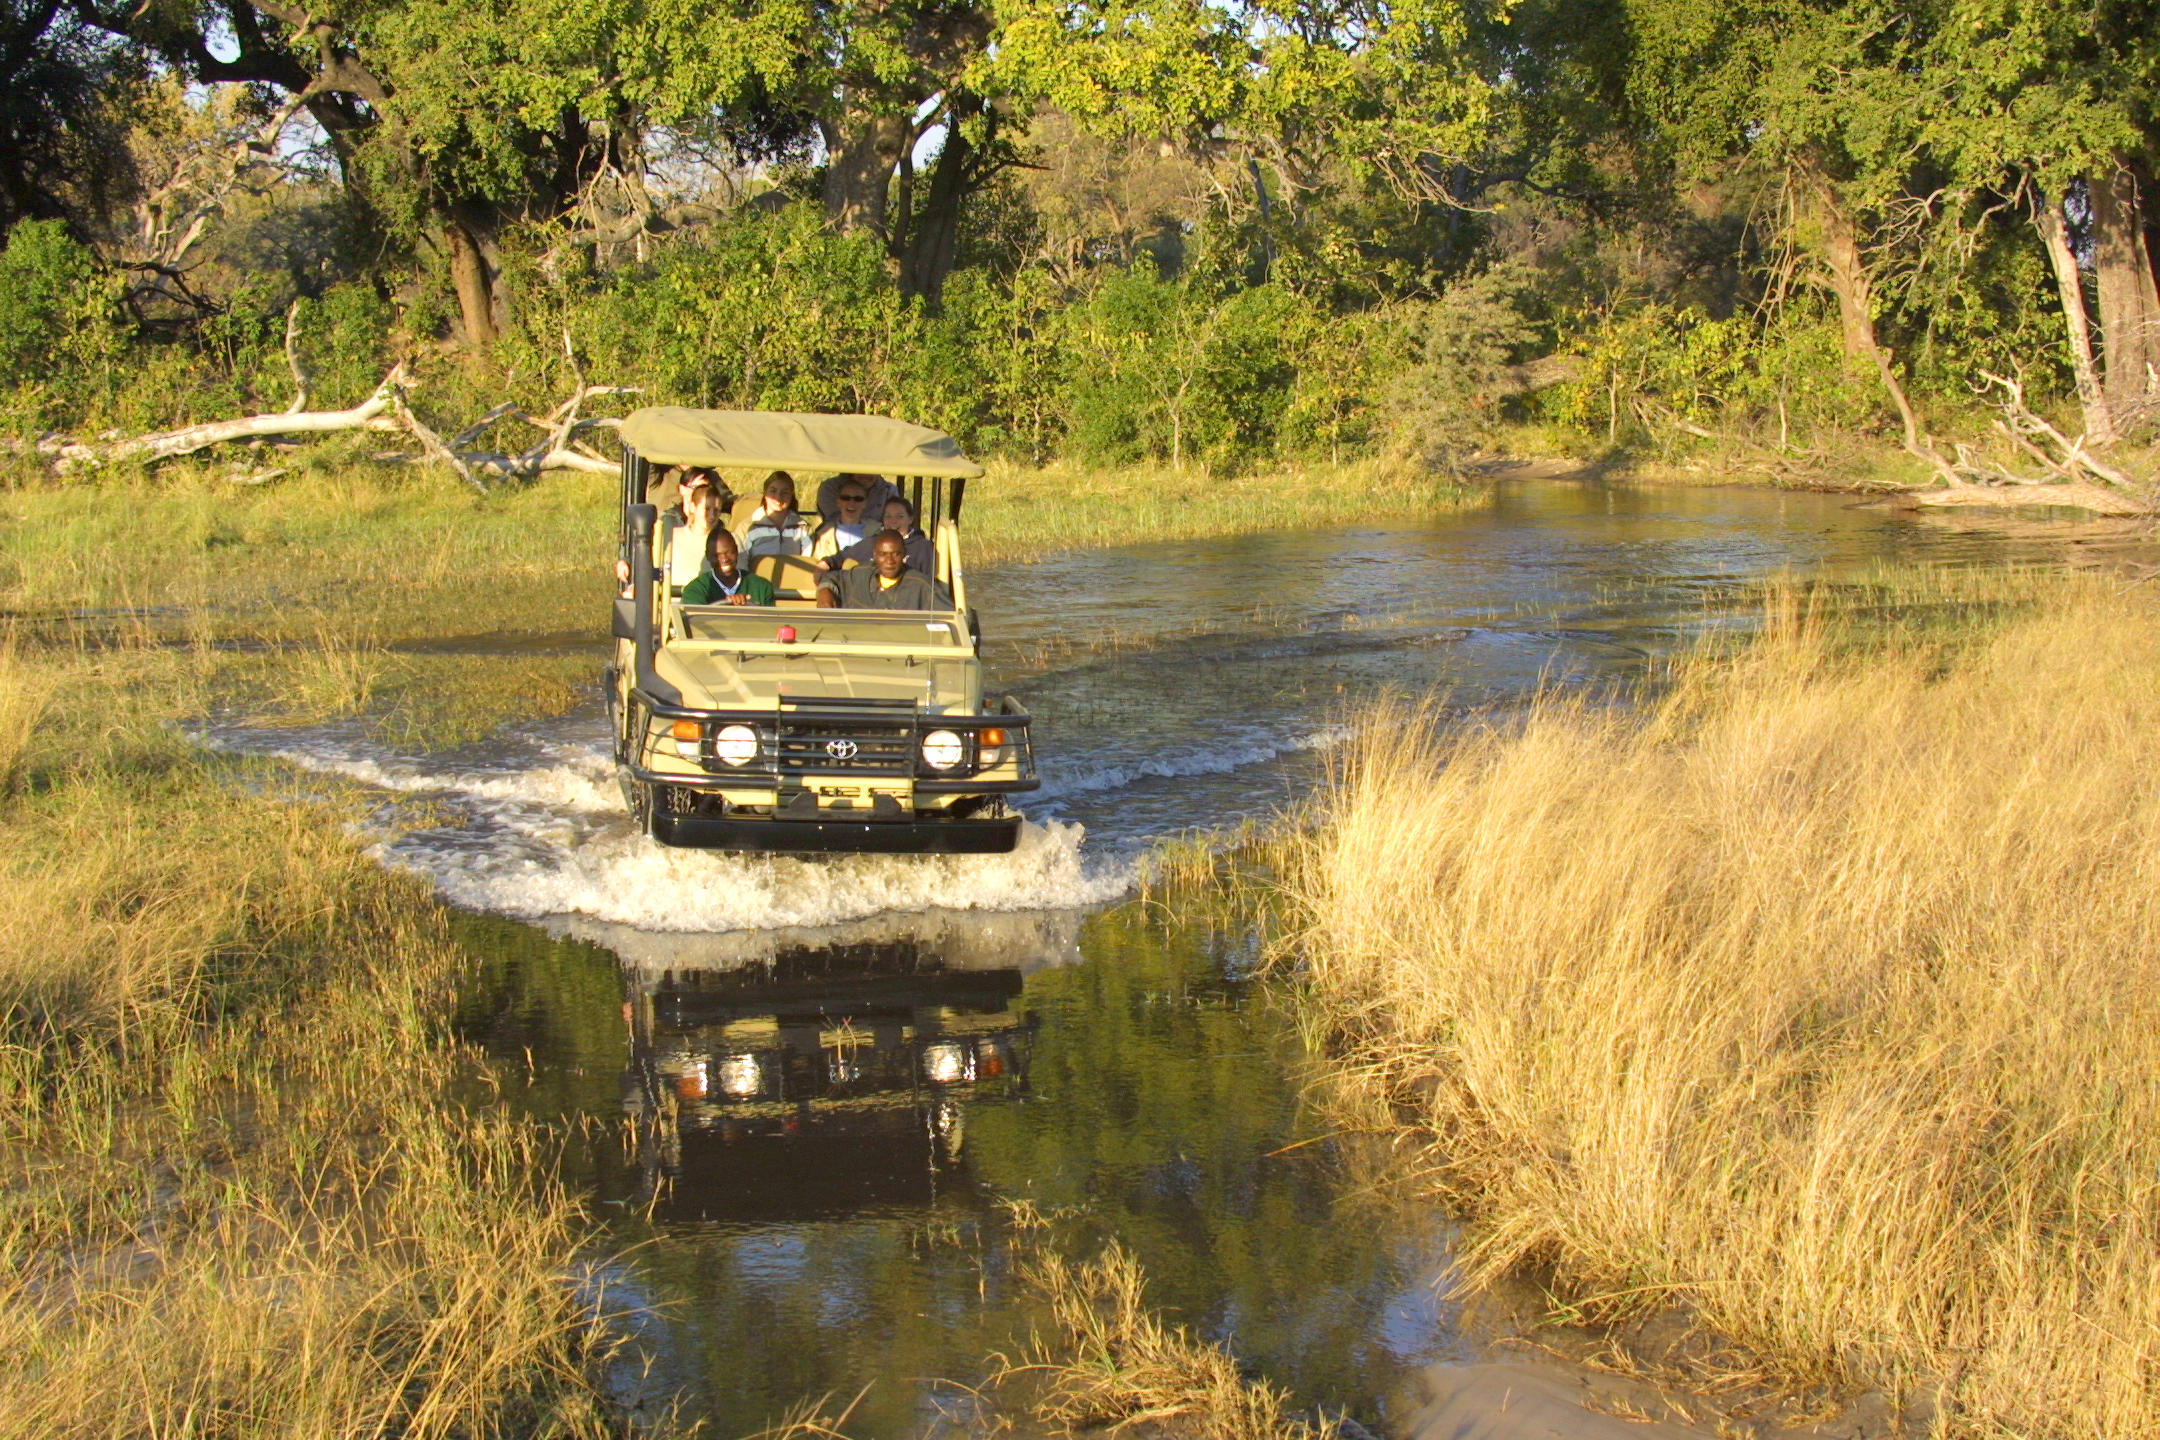 Jeep driving through water